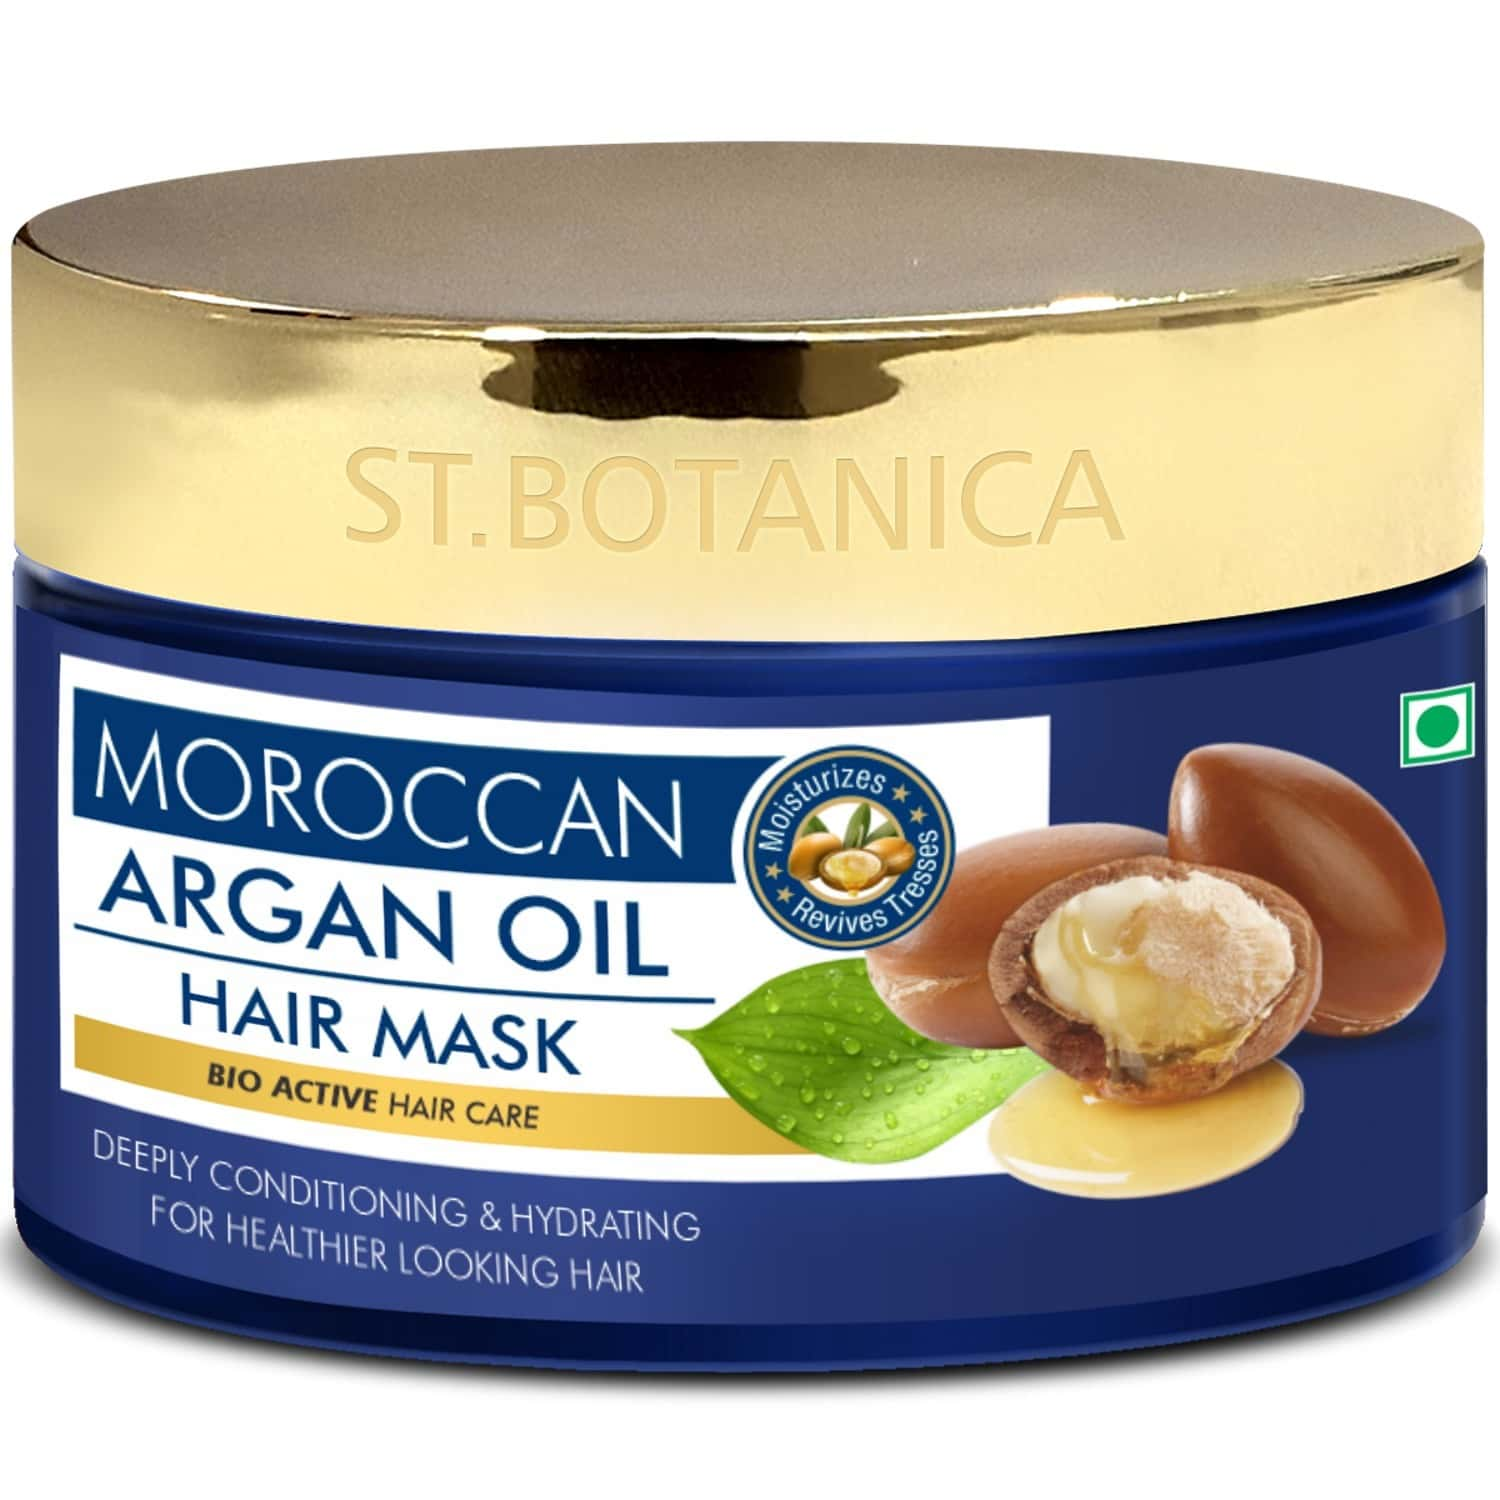 St.botanica Moroccan Argan Hair Mask - Deep Conditioning & Hydration For Healthier Looking Hair - 200 Ml